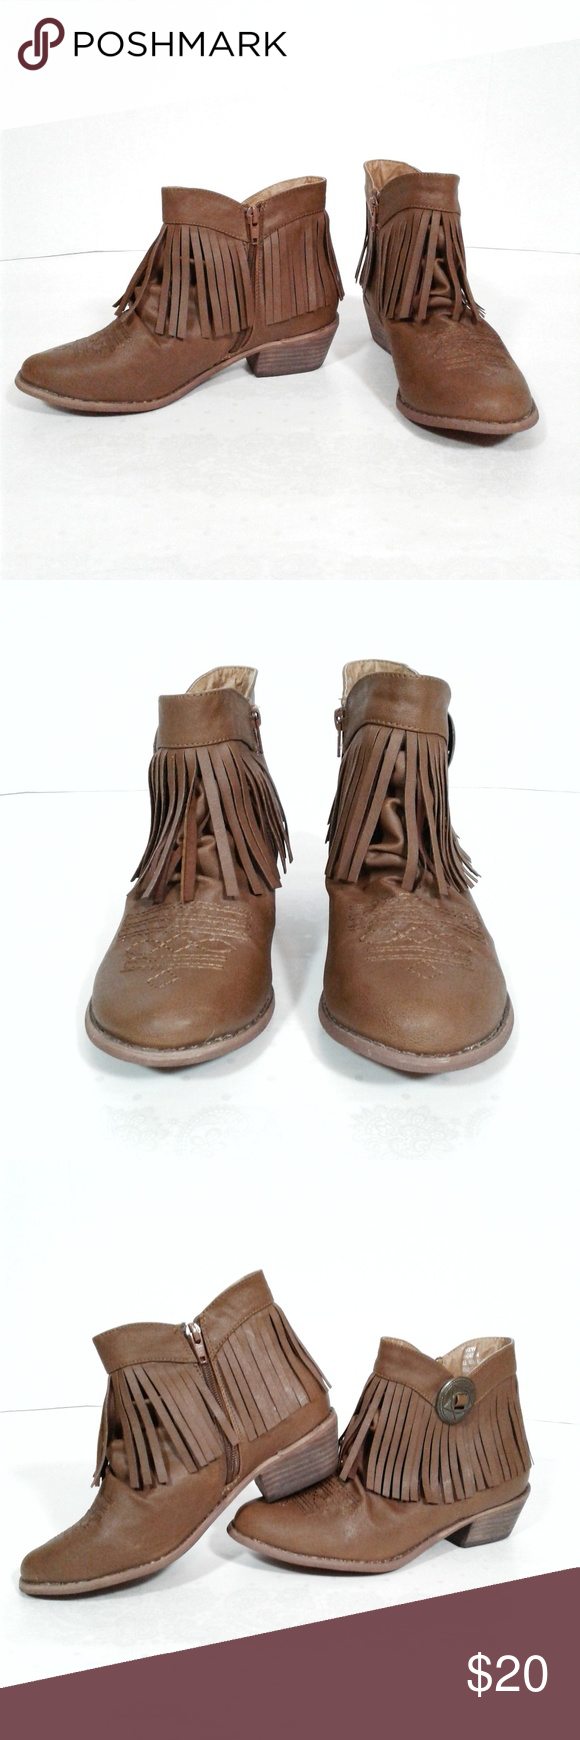 72f59d0bff3 Comfortview Brown Western Fringe Ankle Boots These boots are so cute and  right on trend for